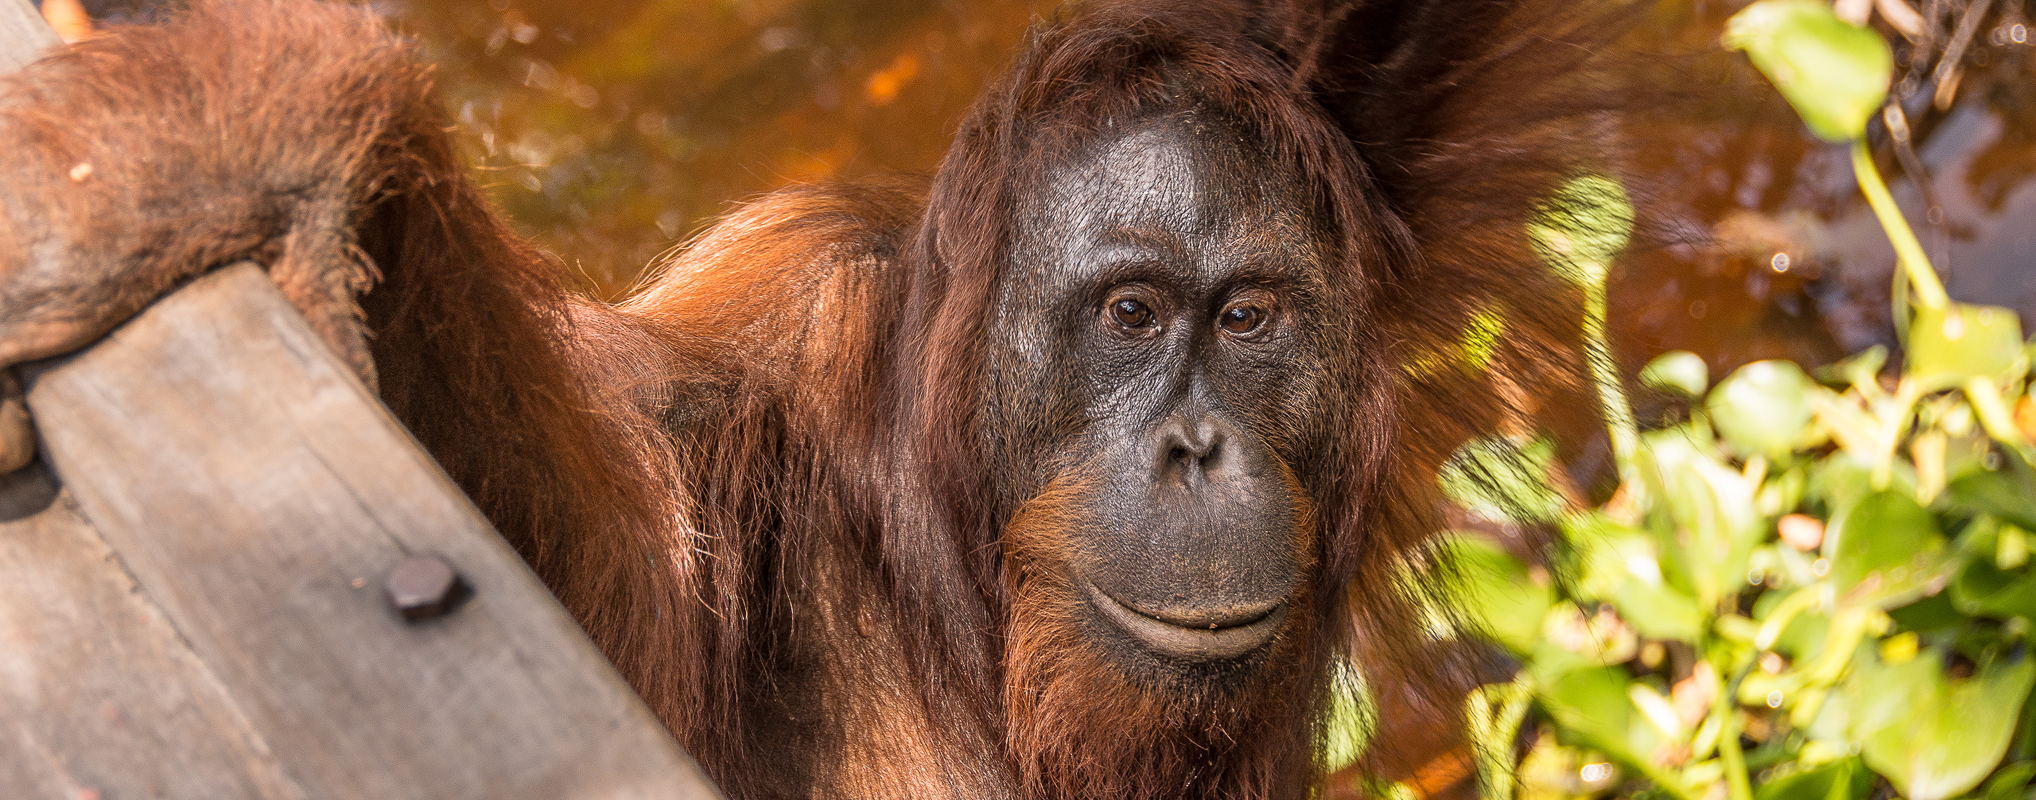 Endangered Orangutan at Camp Leakey, Borneo | Photo: Angela Neal Grove